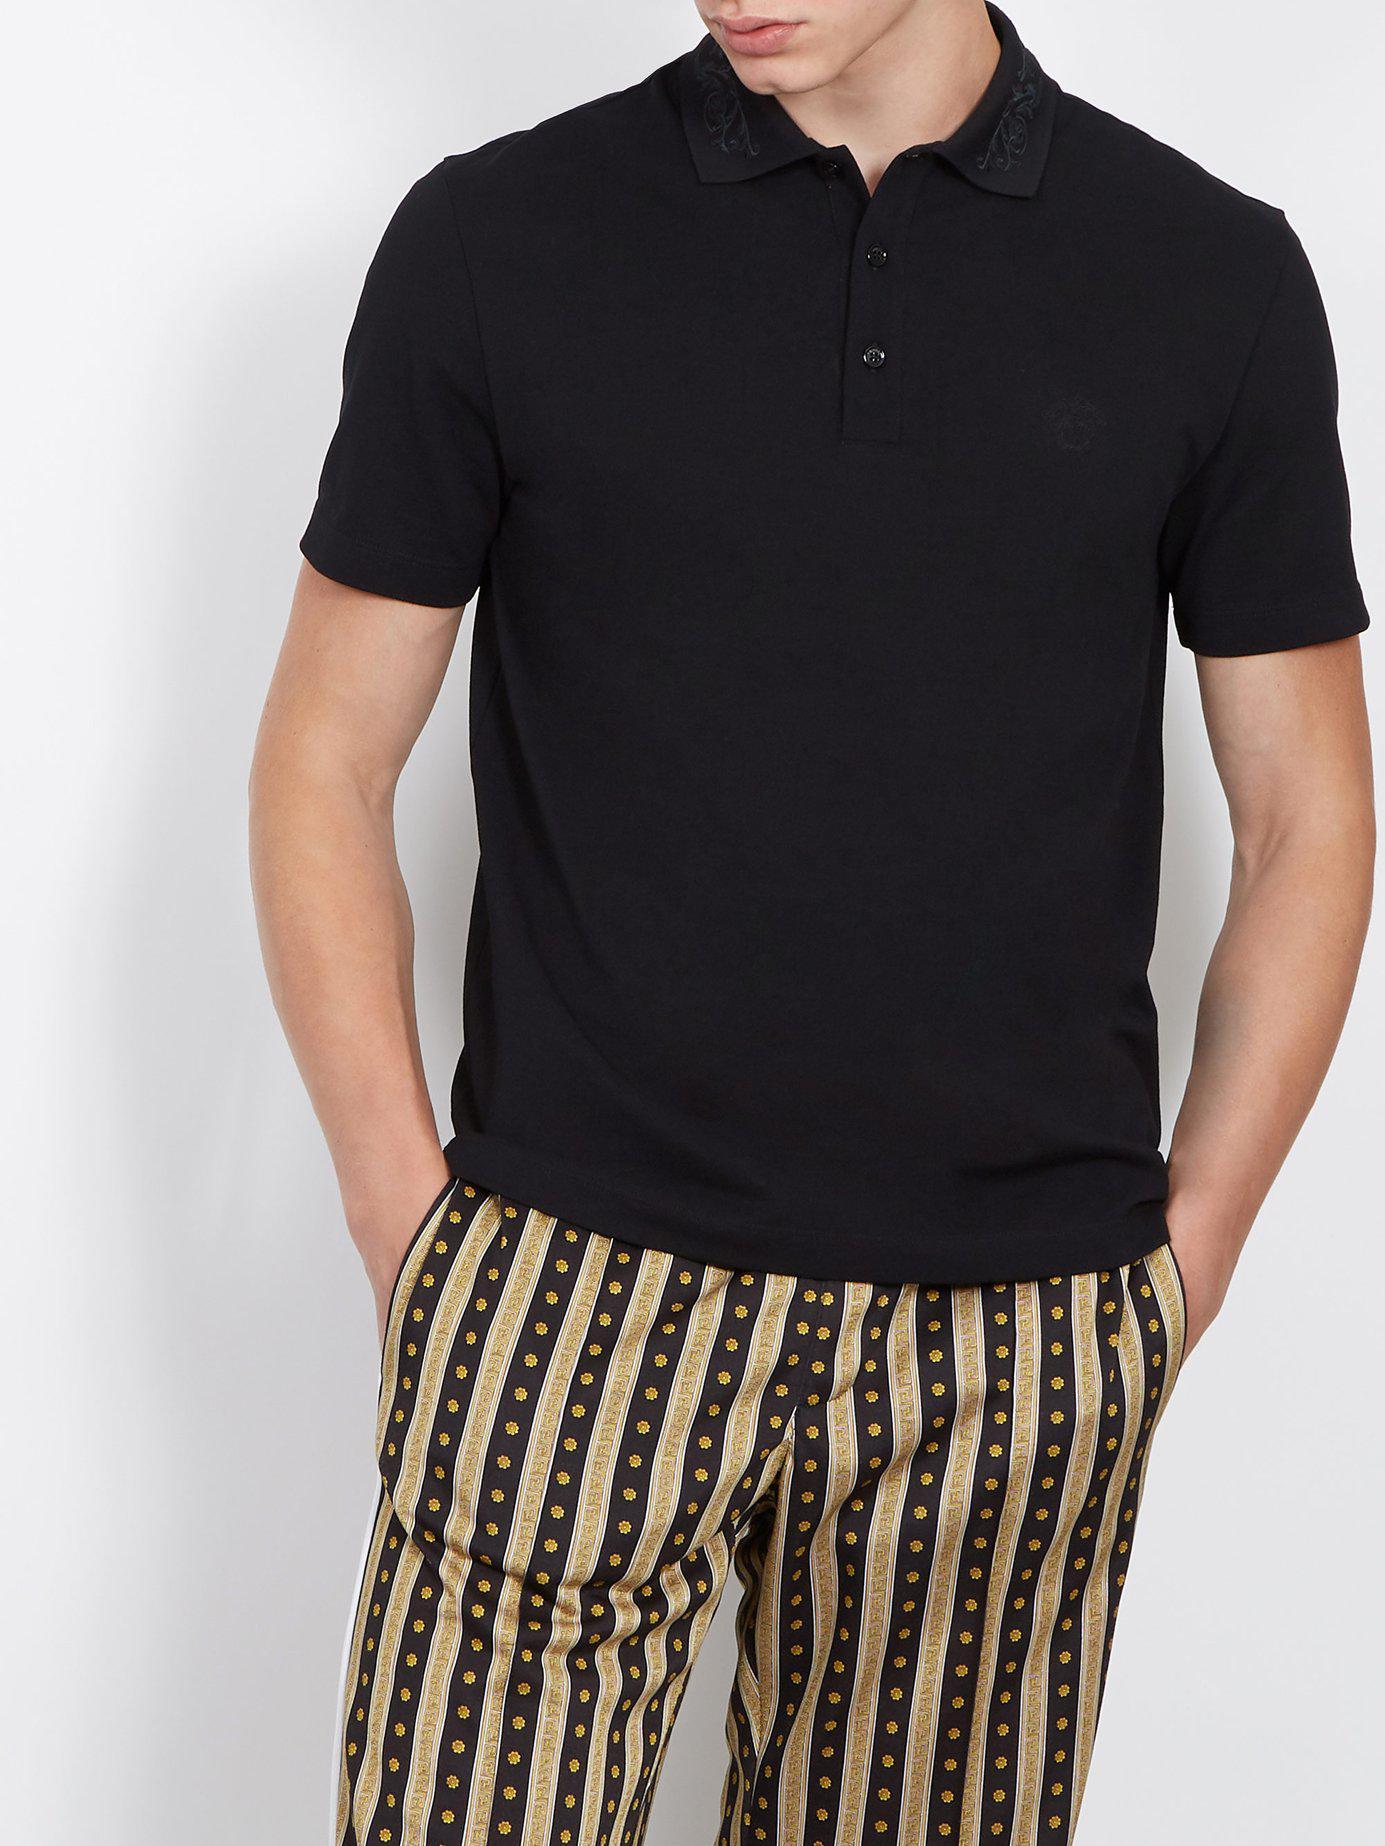 6142be8d8c3a Lyst - Versace Baroque Collar Cotton Polo Shirt in Black for Men